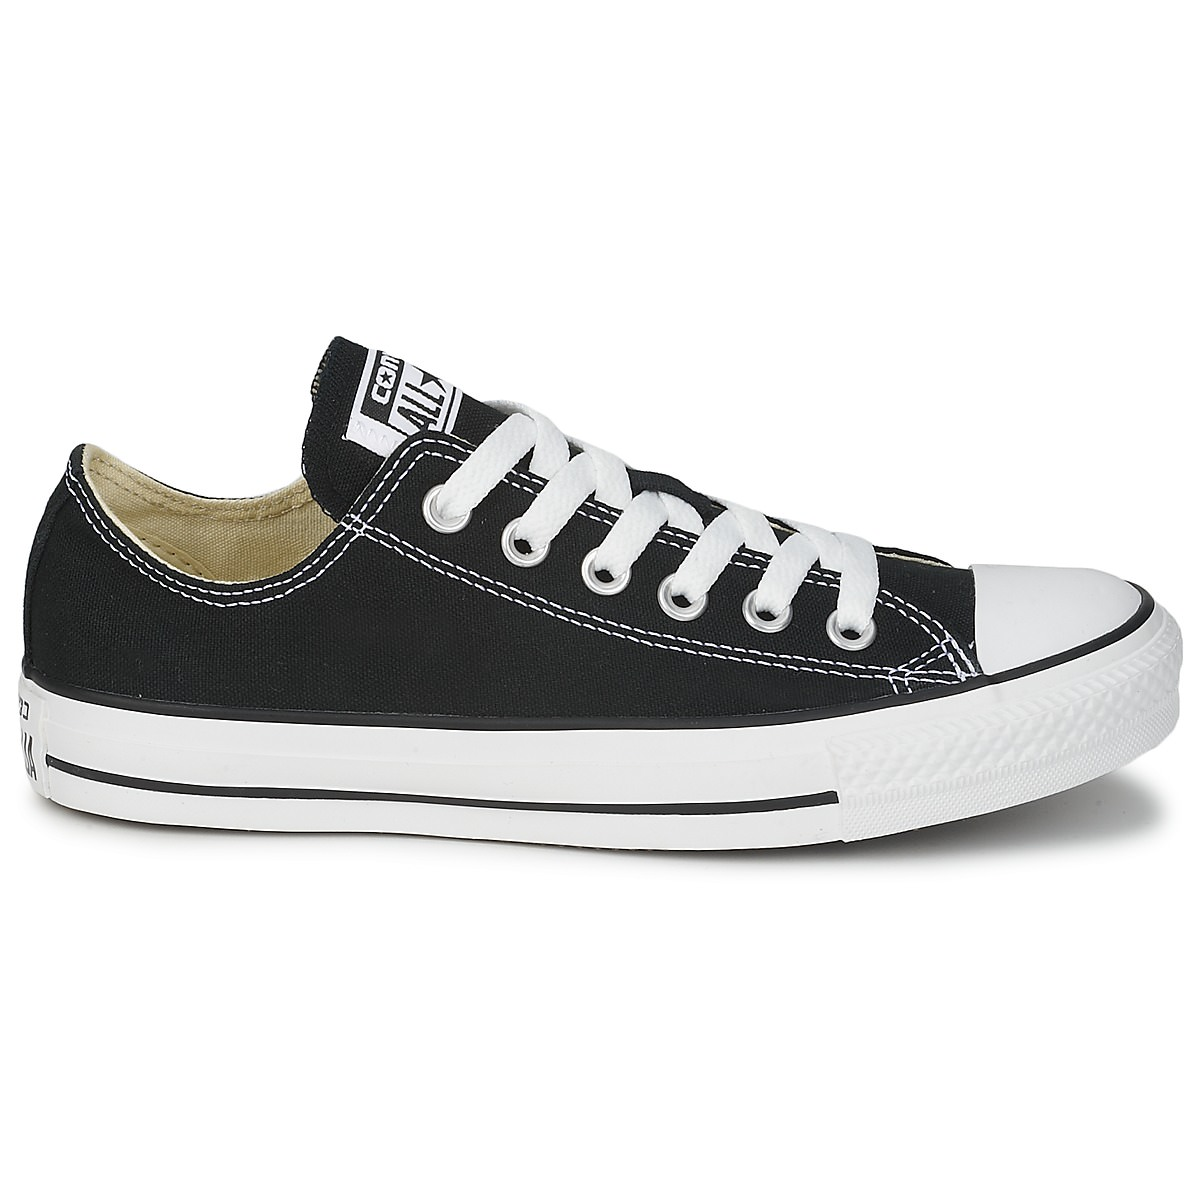 Image of Chuck Taylor All Stars